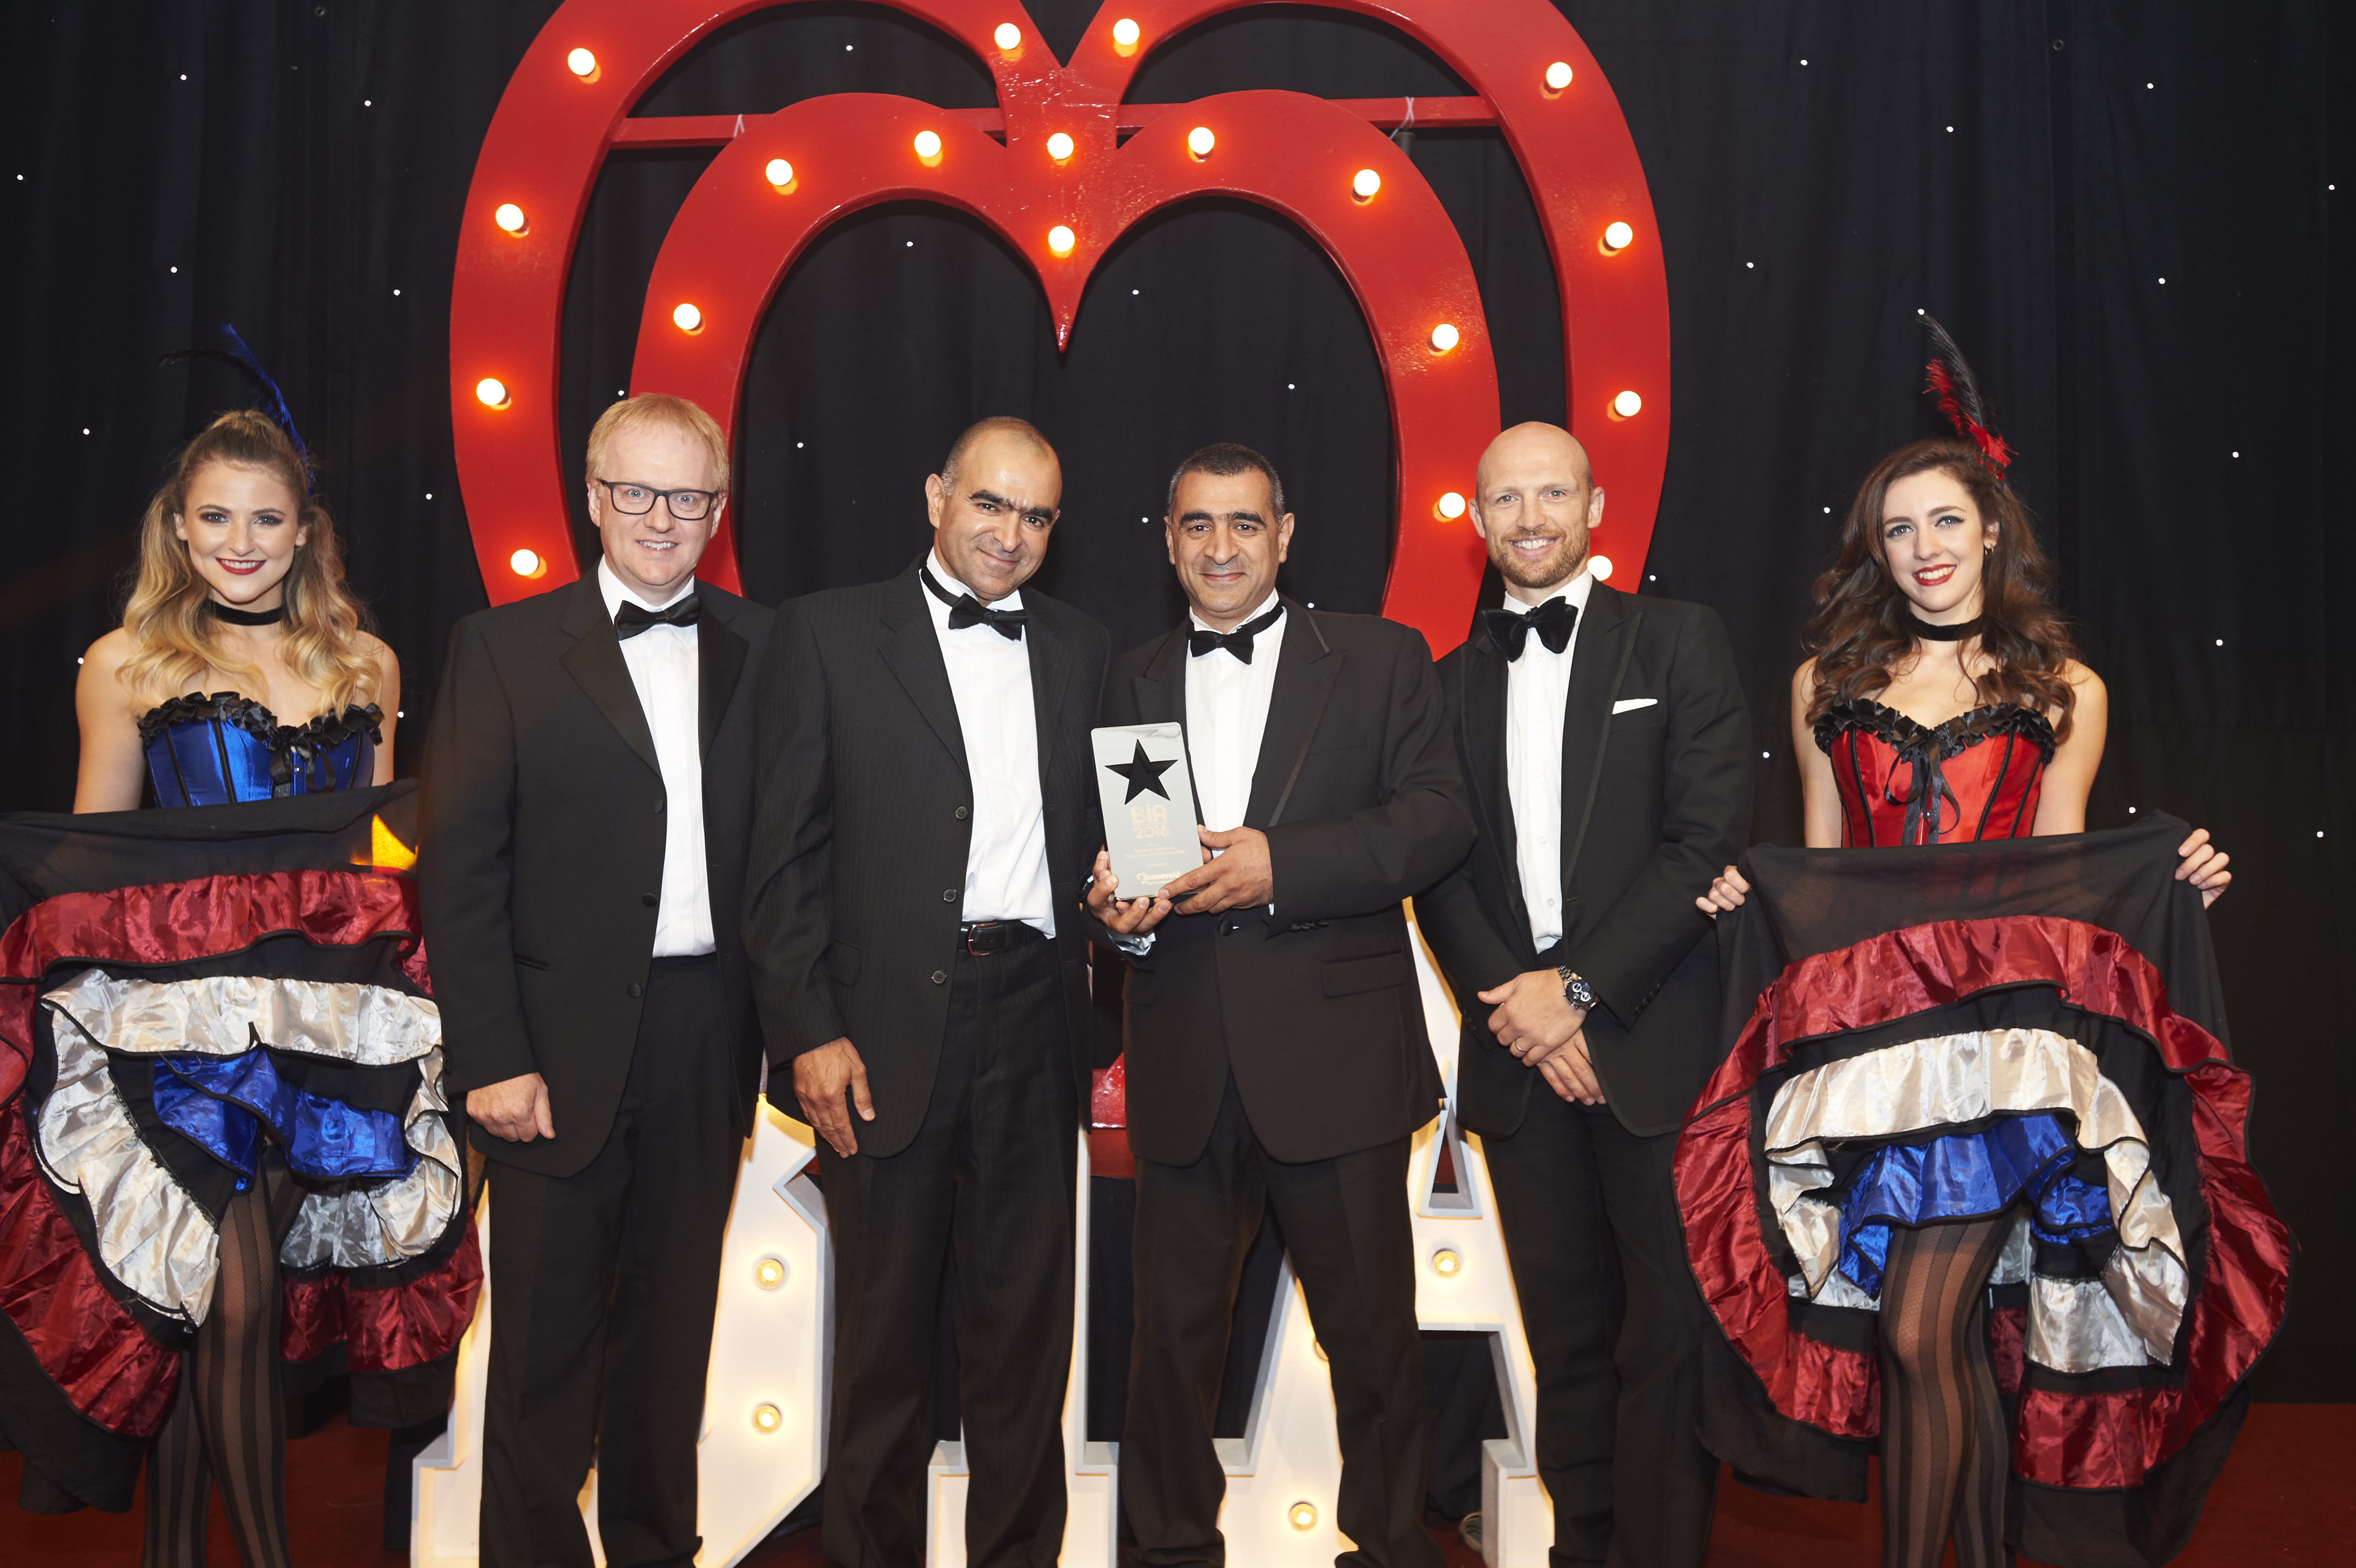 Signature Flatbreads wins Bakery Manufacturer of the Year